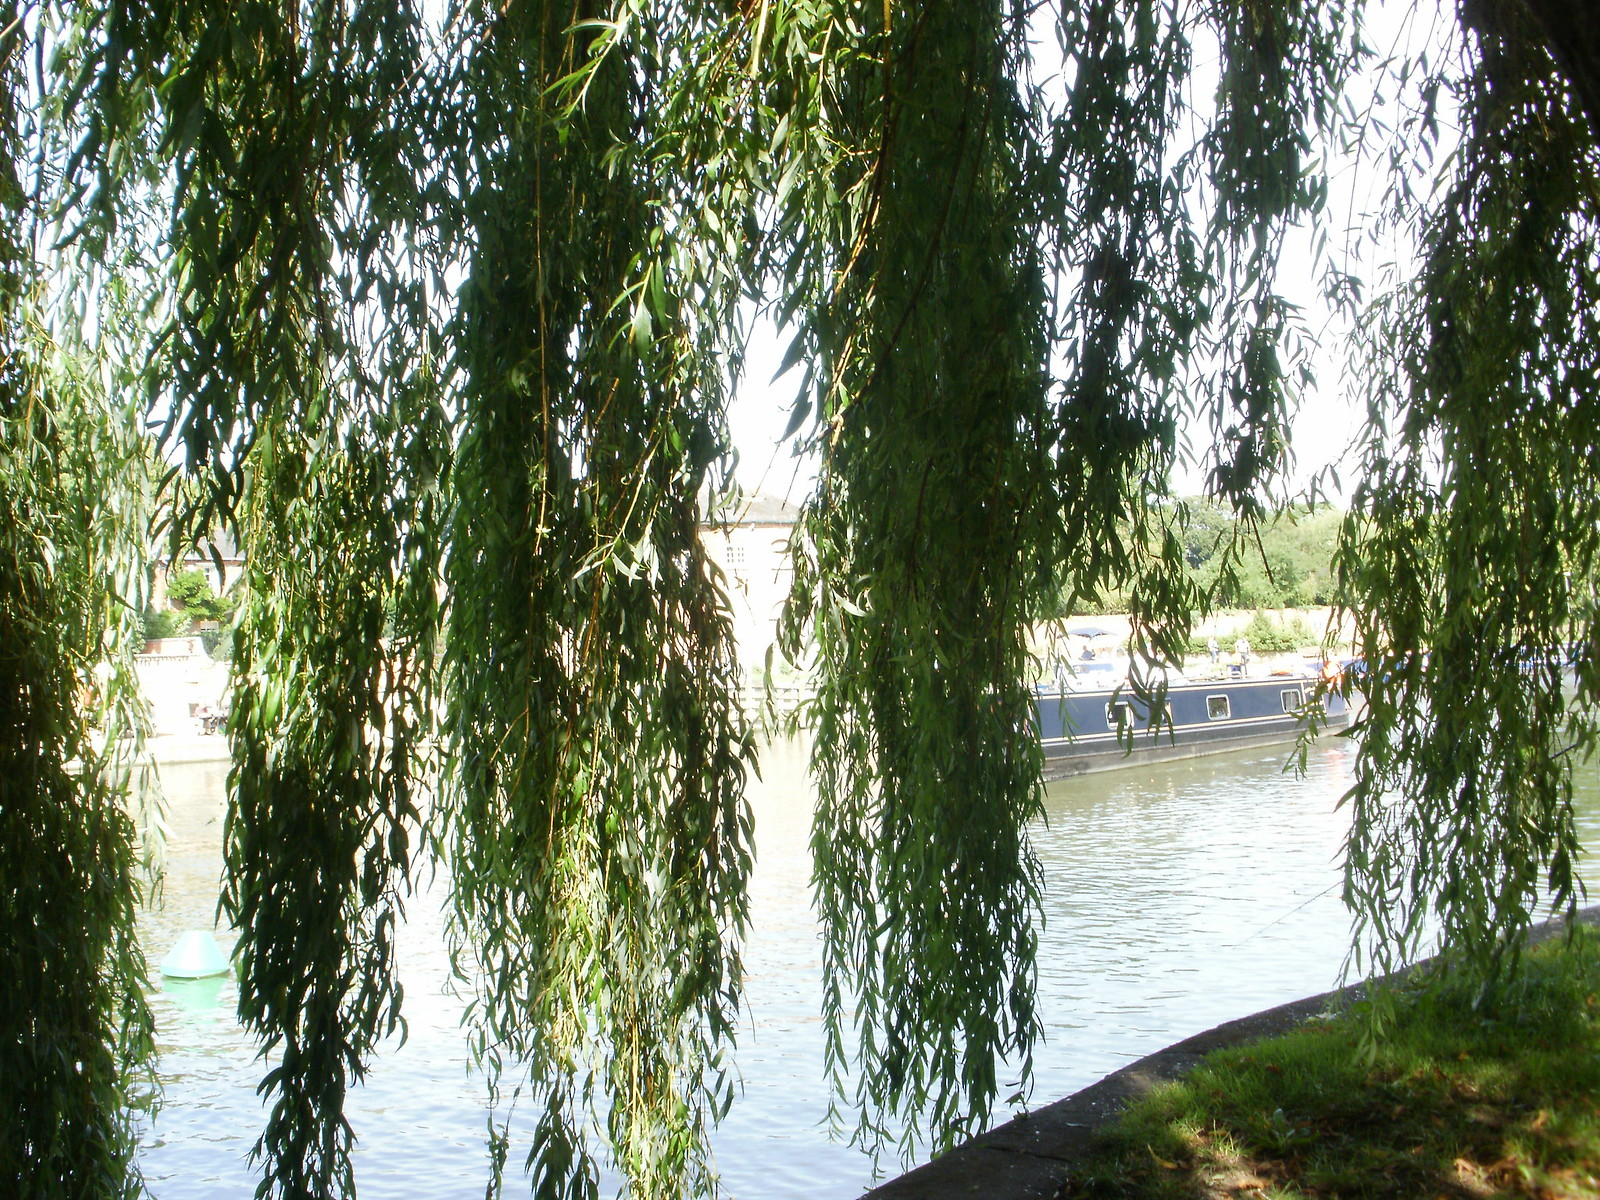 Willows and barge